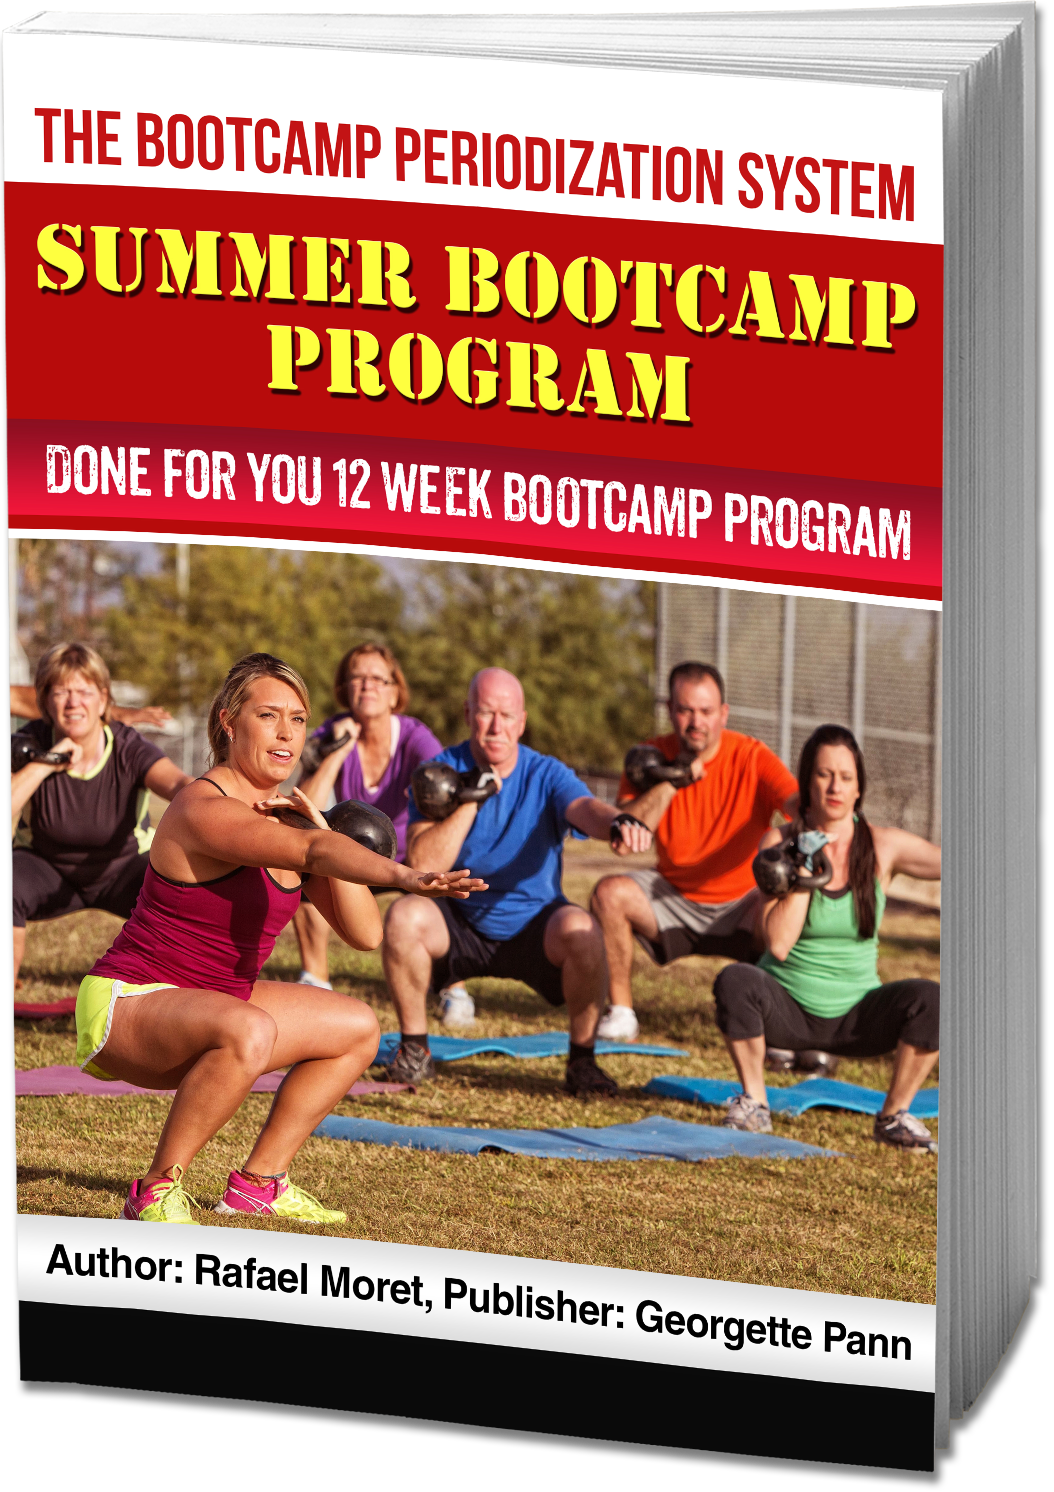 Thefitnessbootcampcom 0 21 Superset Style Circuit Bootcamp Workout Ideas Its Summer And Your Bootcampers Are Thinking About Baring Themselves On The Beach Use This 12 Week Periodization Program To Get Them Lean Sexy